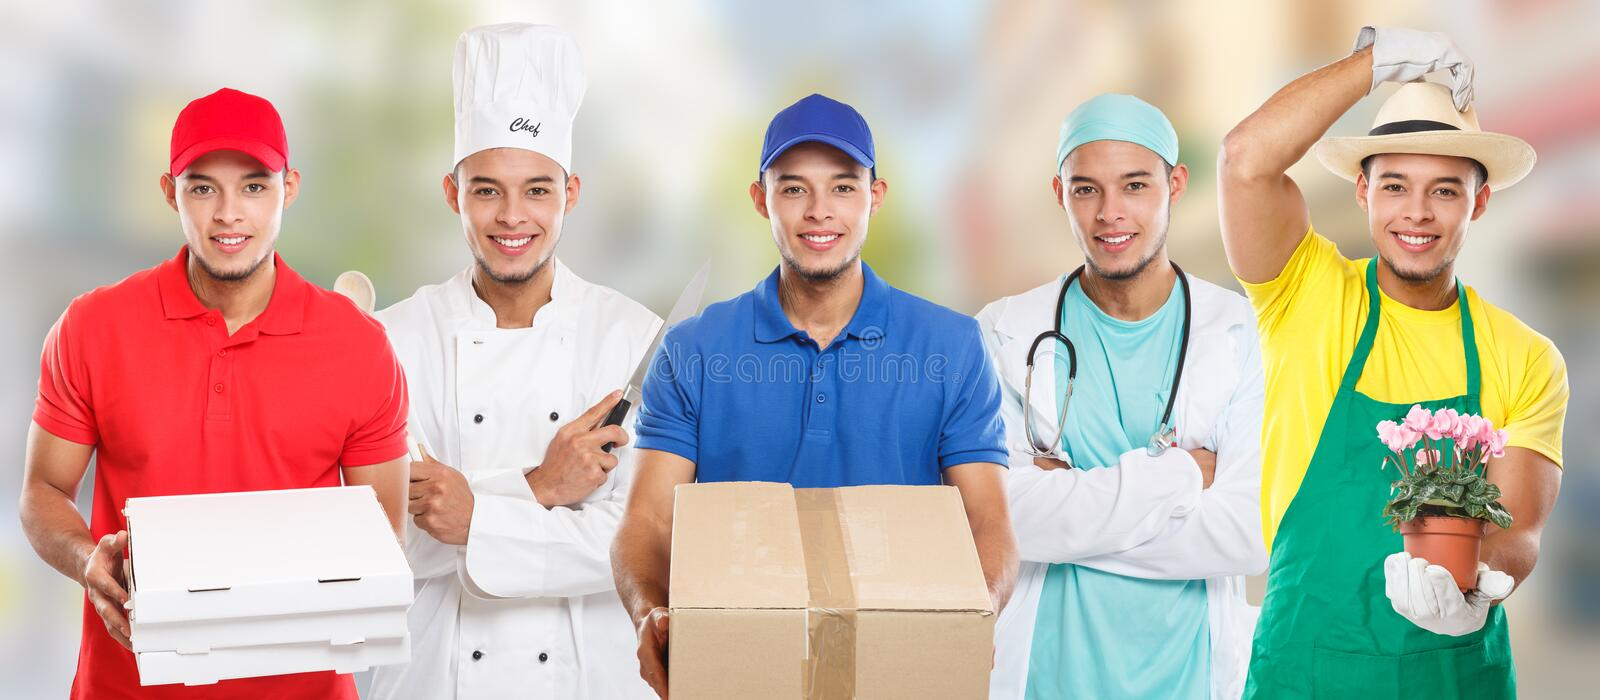 Occupations occupation education training profession doctor cook group of young people latin man job town royalty free stock photo